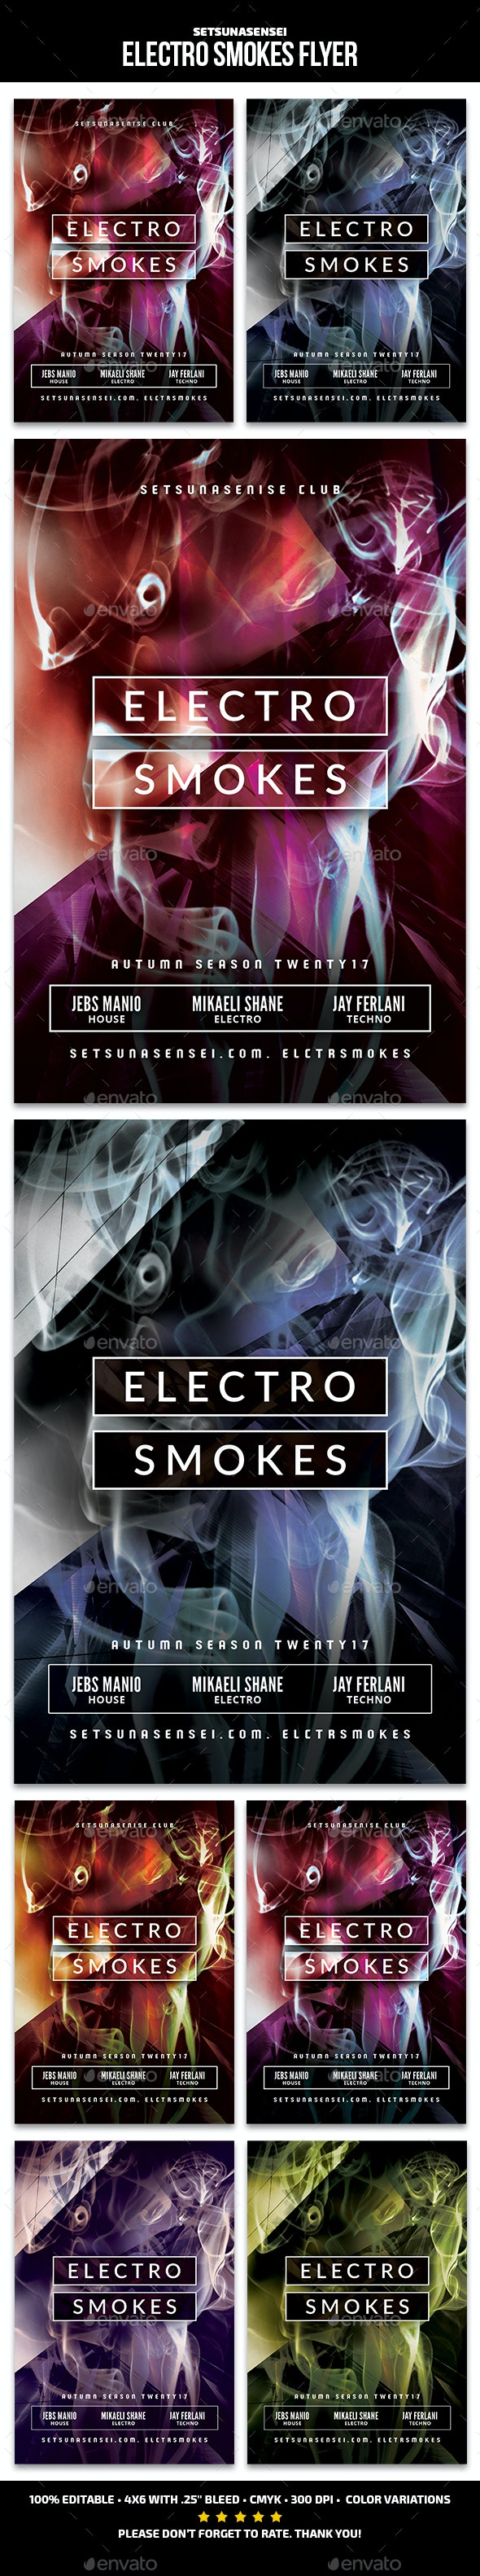 Electro Smokes Flyer - Clubs & Parties Events